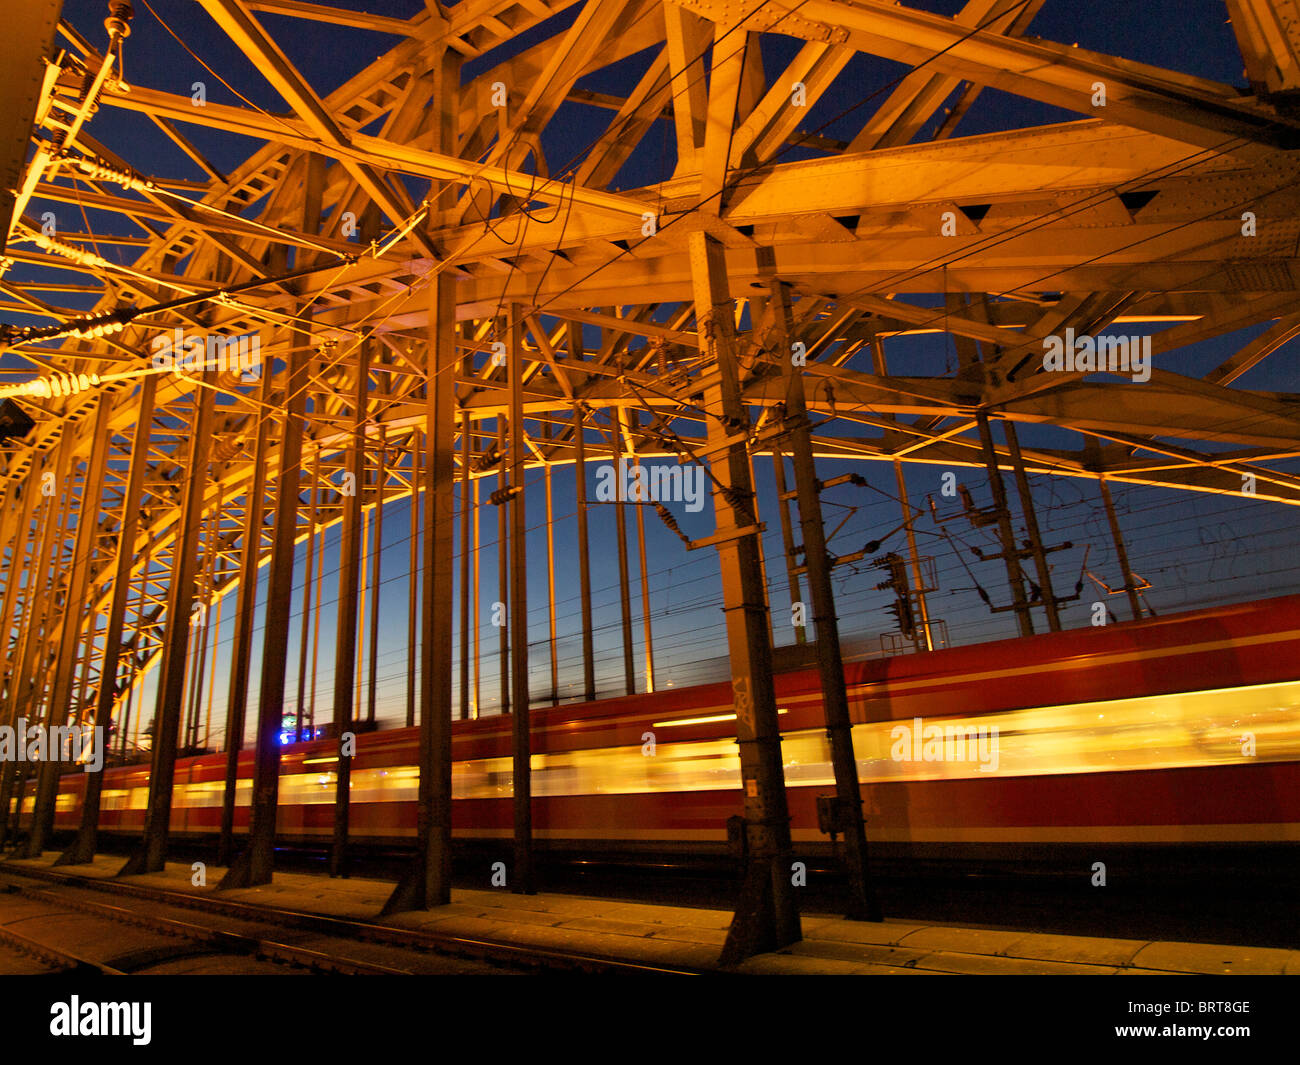 Train passing Hohenzollernbrucke railway bridge at night. Cologne, NRW, Germany - Stock Image